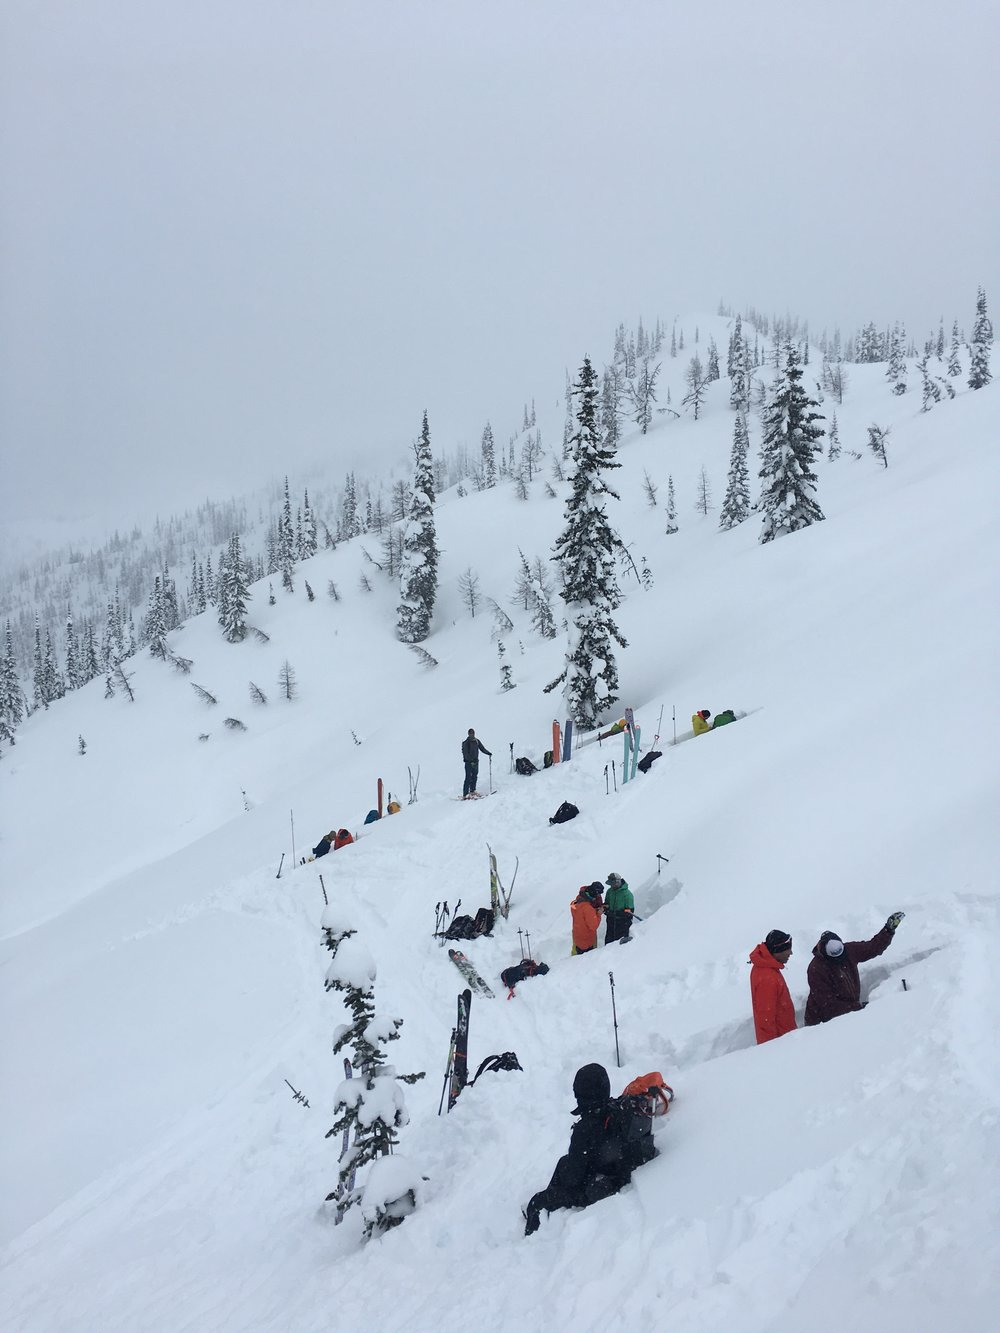 AIARE 2 students gathering snowpack obs above Ymir Lodge, March 2018.